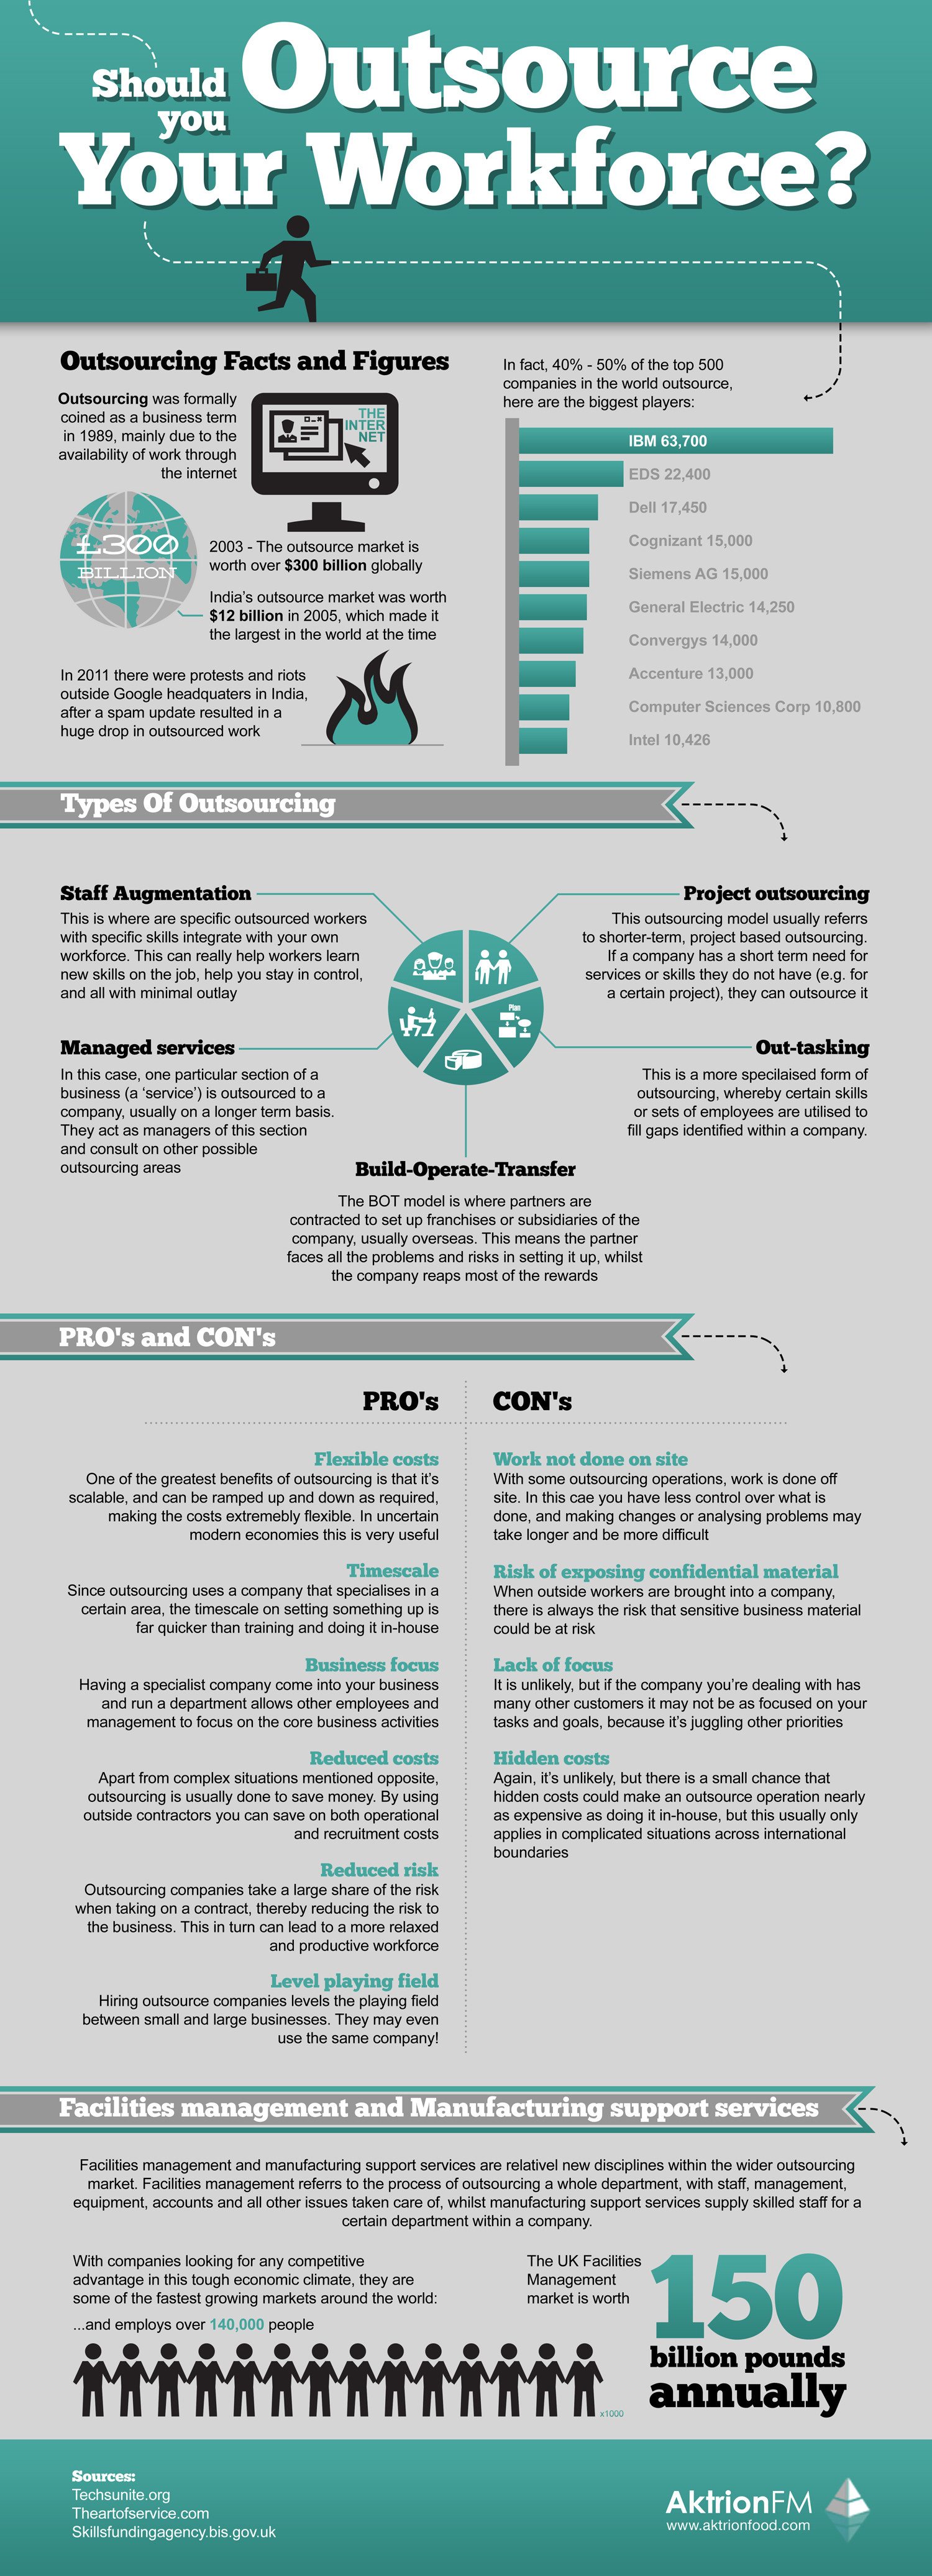 Should You Outsource Your Workforce? Infographic